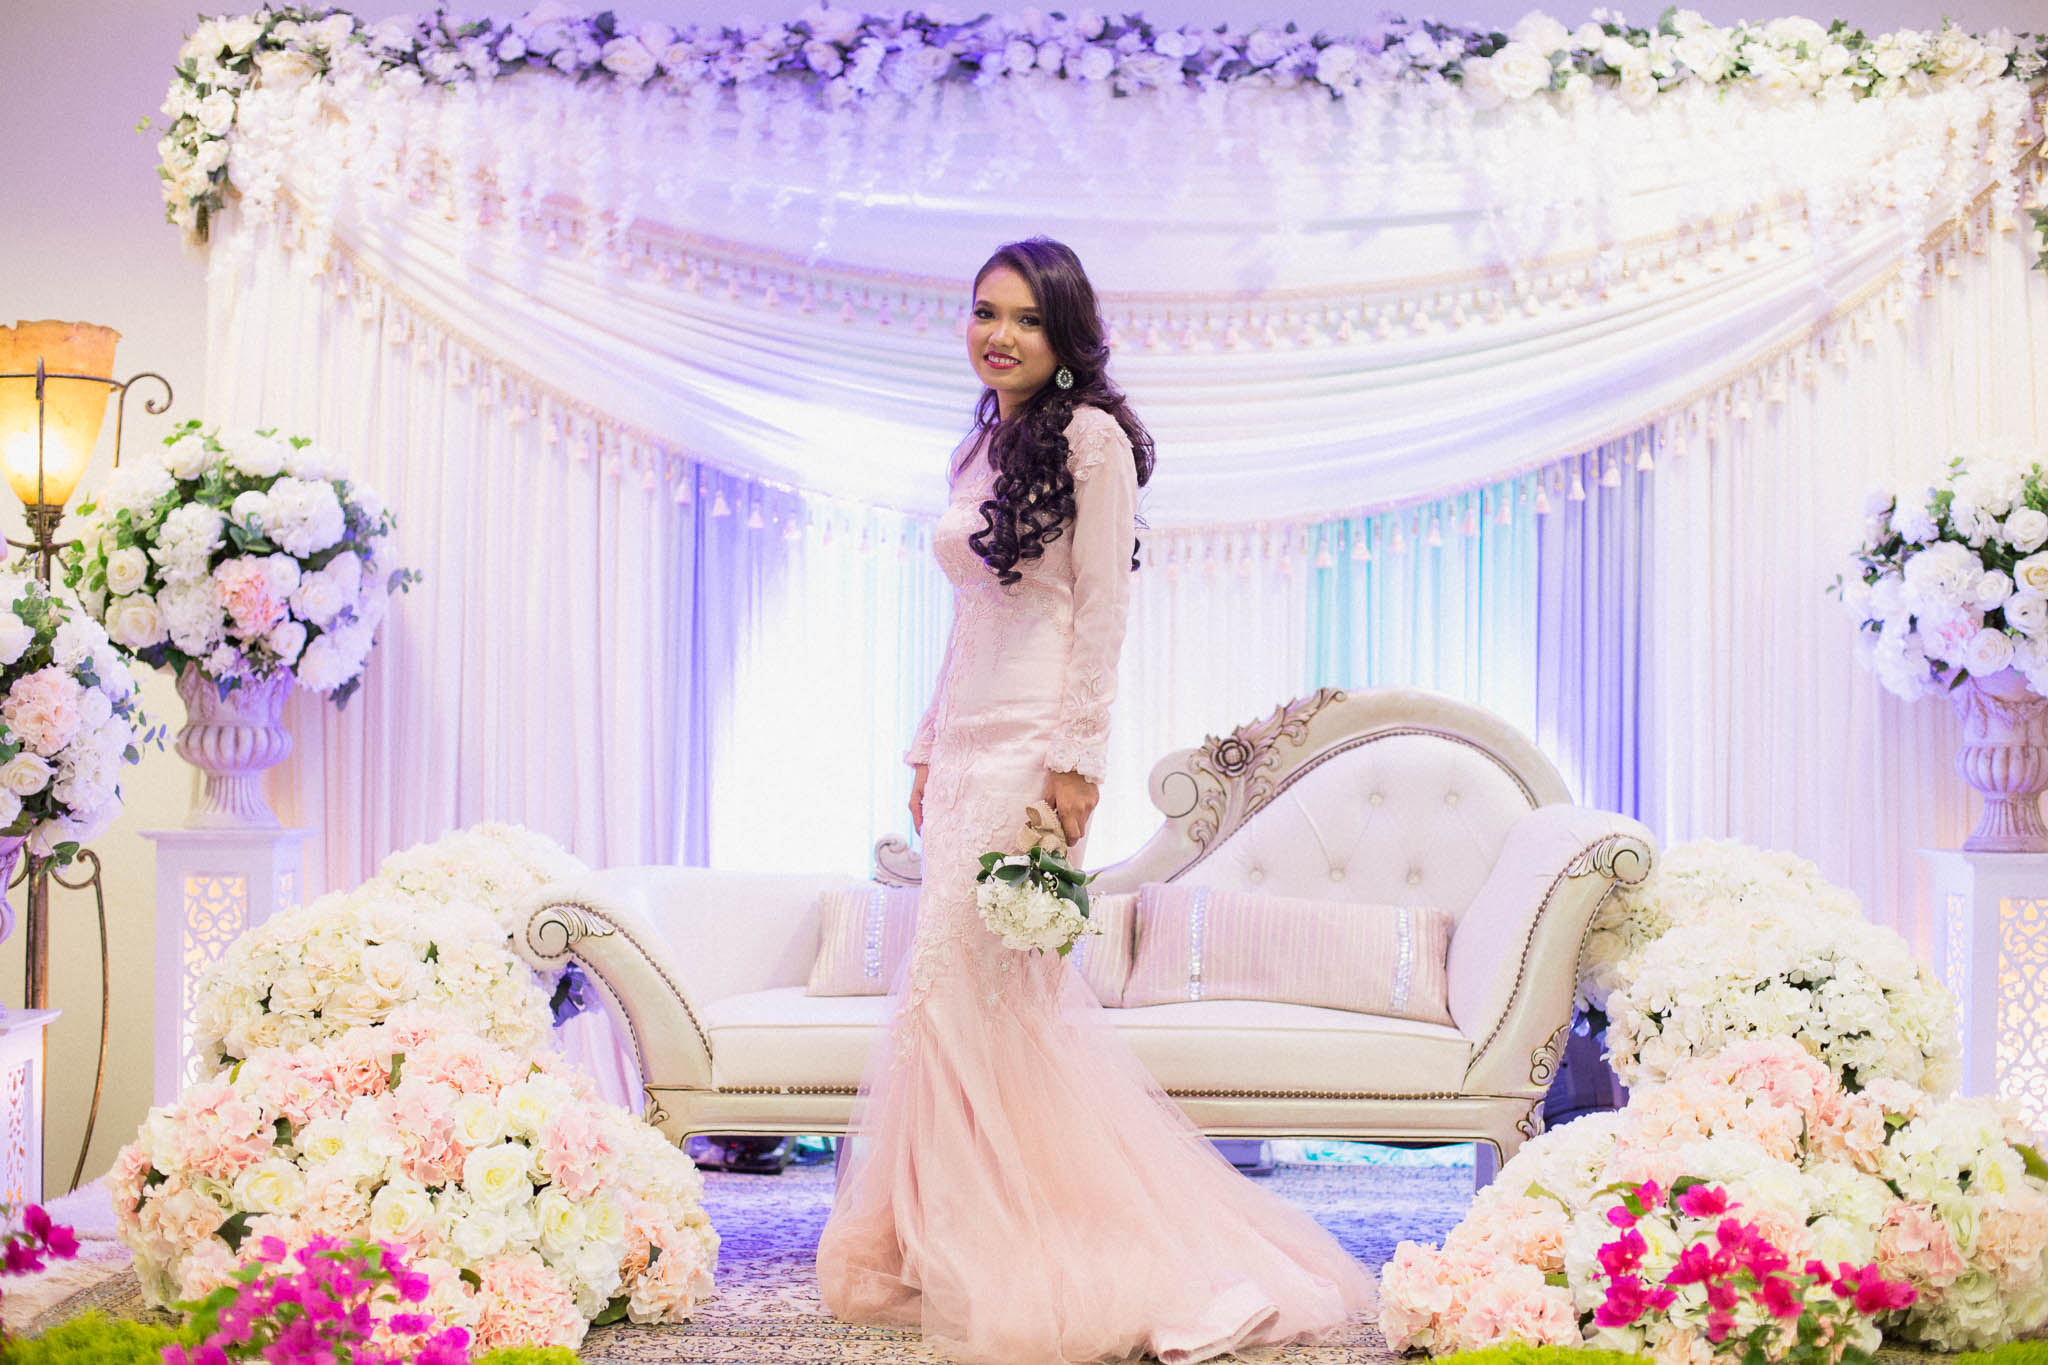 singapore-wedding-photographer-wedding-halimah-muhsin-043.jpg